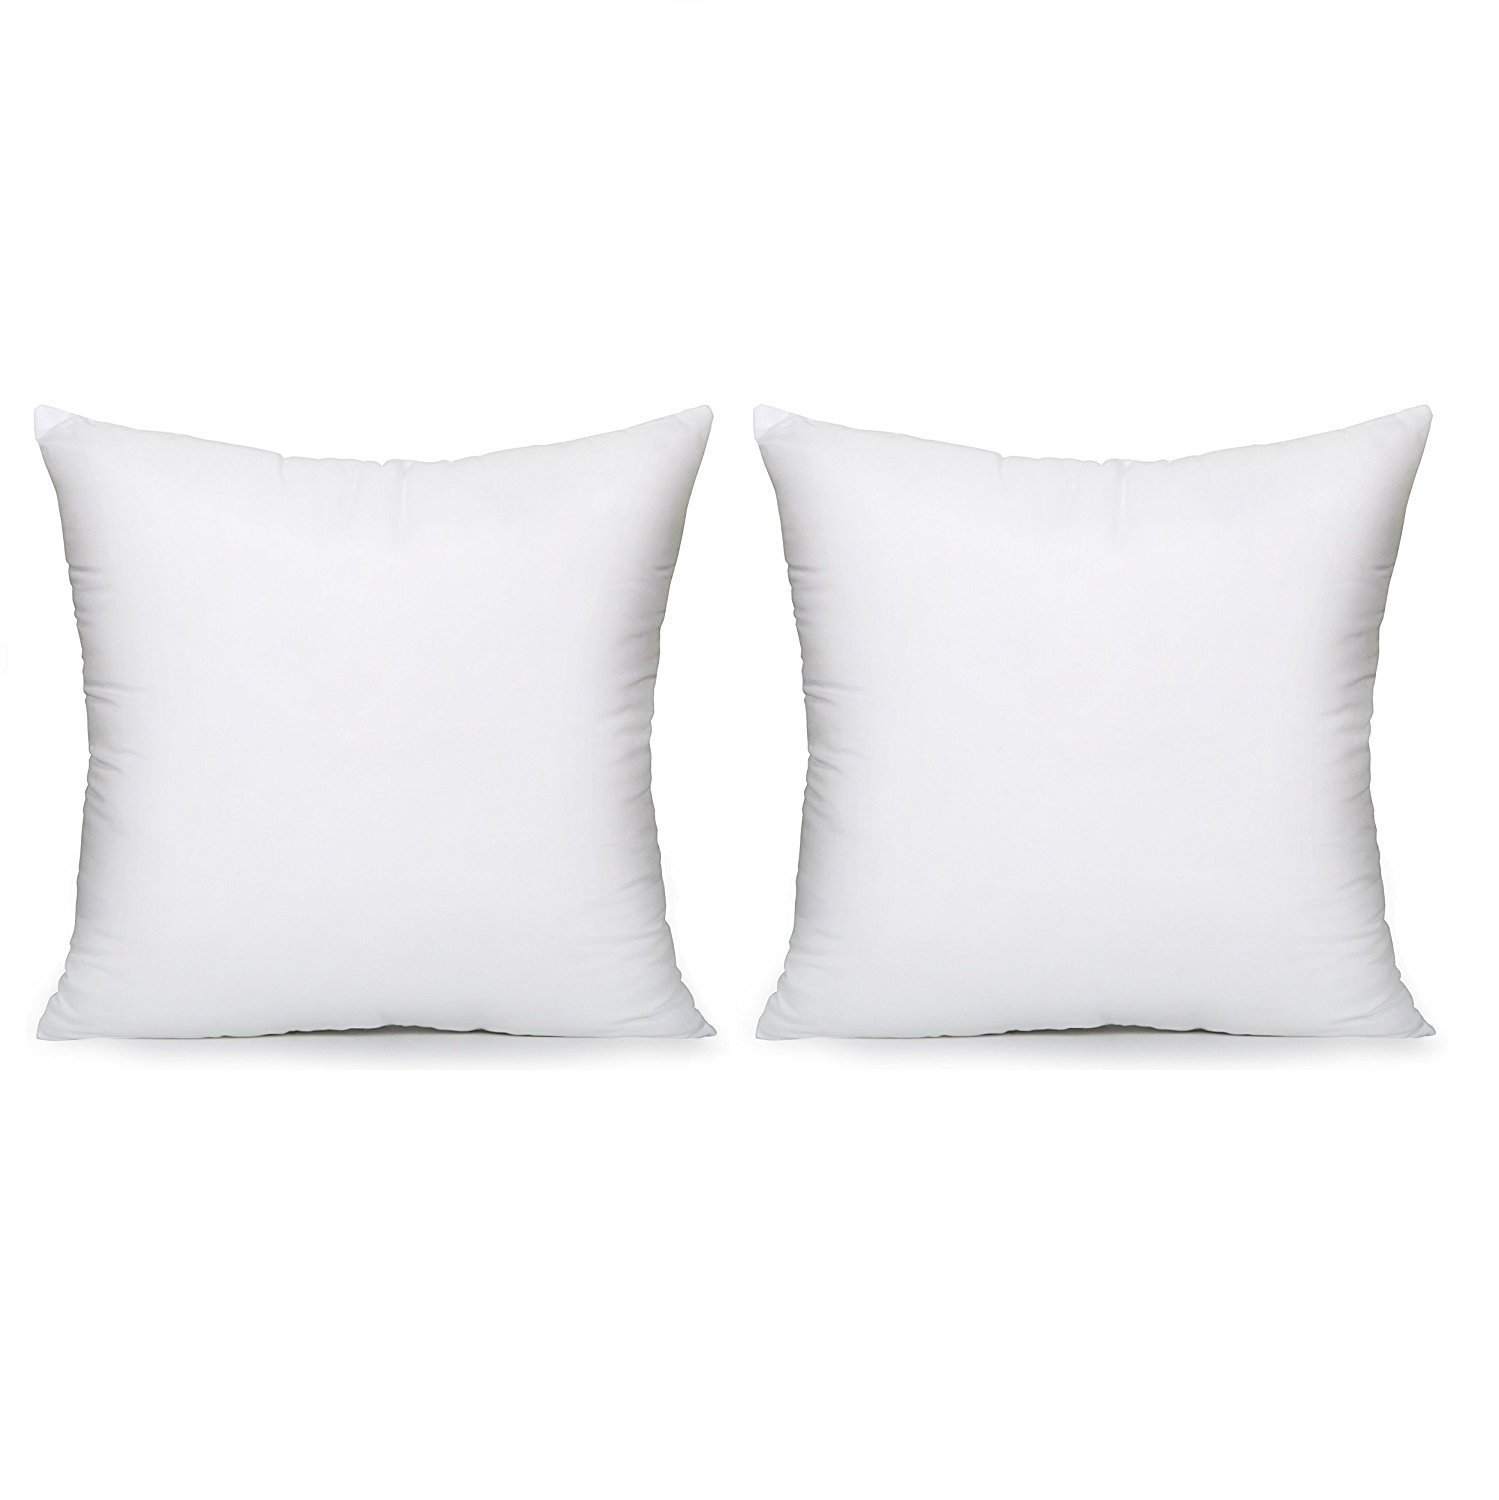 Acanva Hypoallergenic Pillow Insert Form, 14-2P, White by Acanva